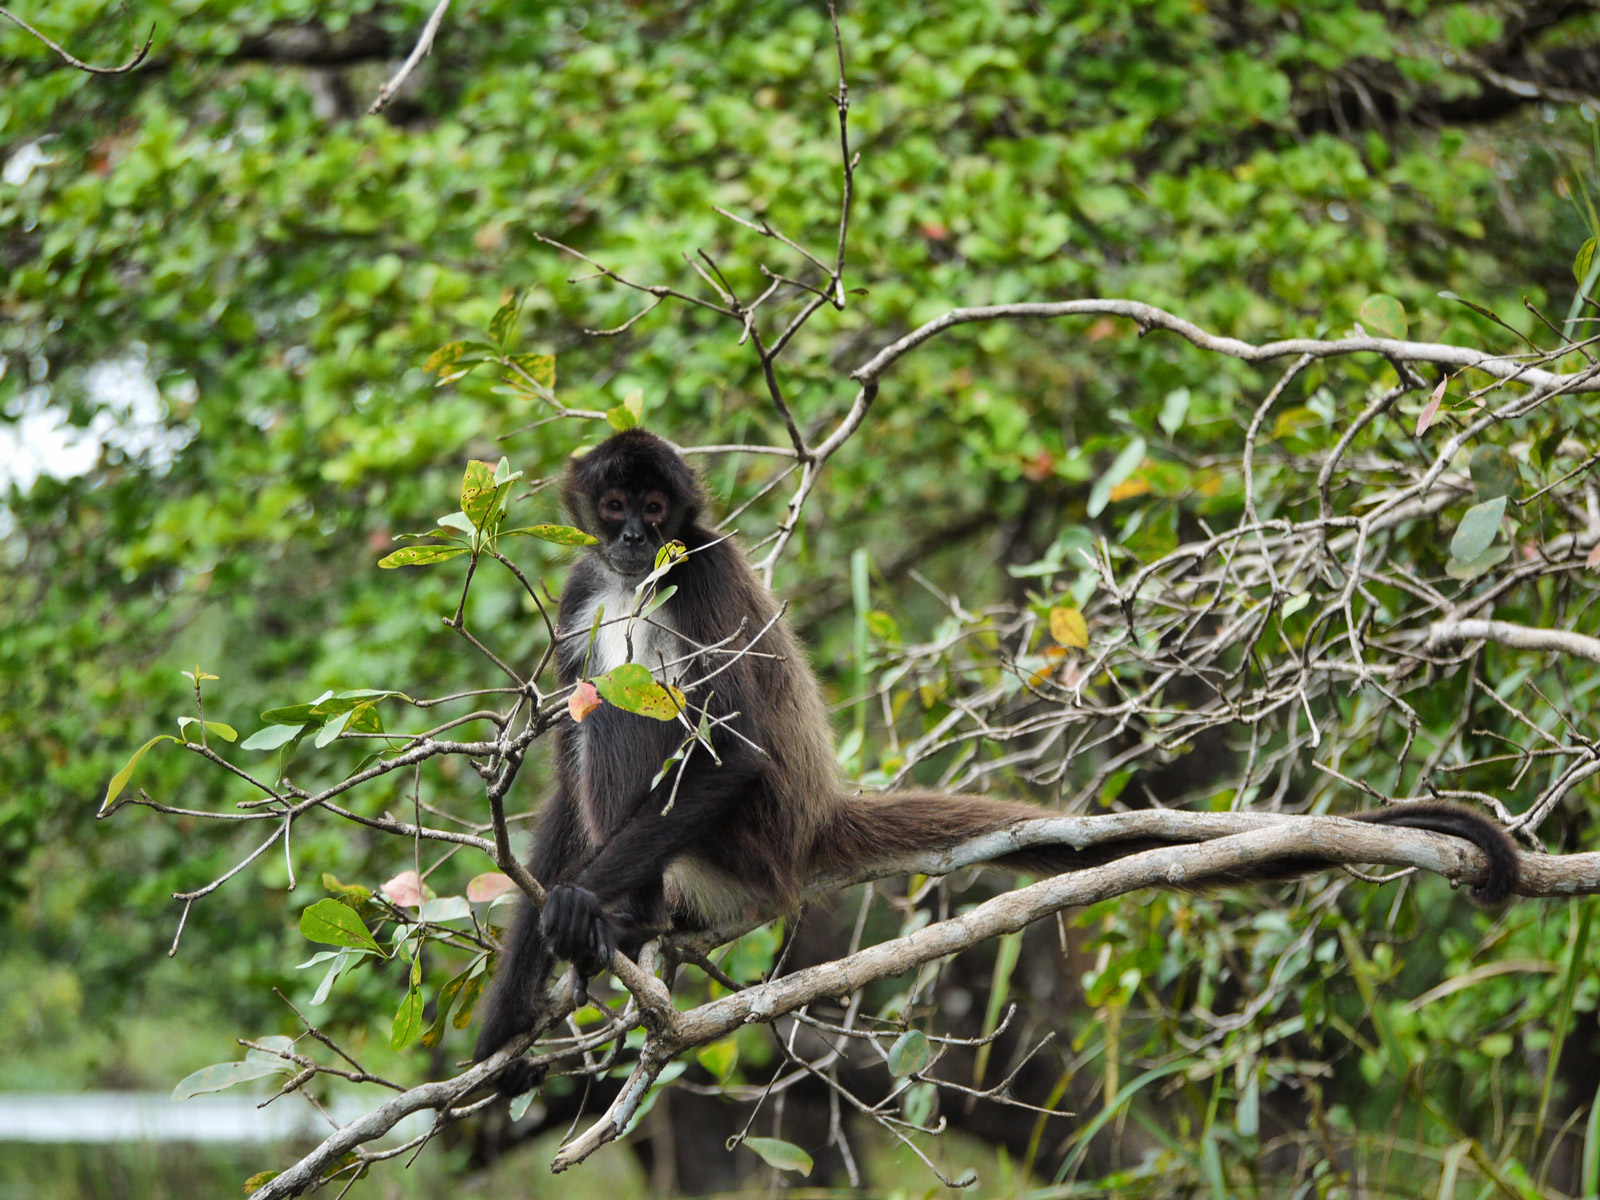 Feeding the Spider Monkey on the Way Back From Lamanai - Belize, Belize